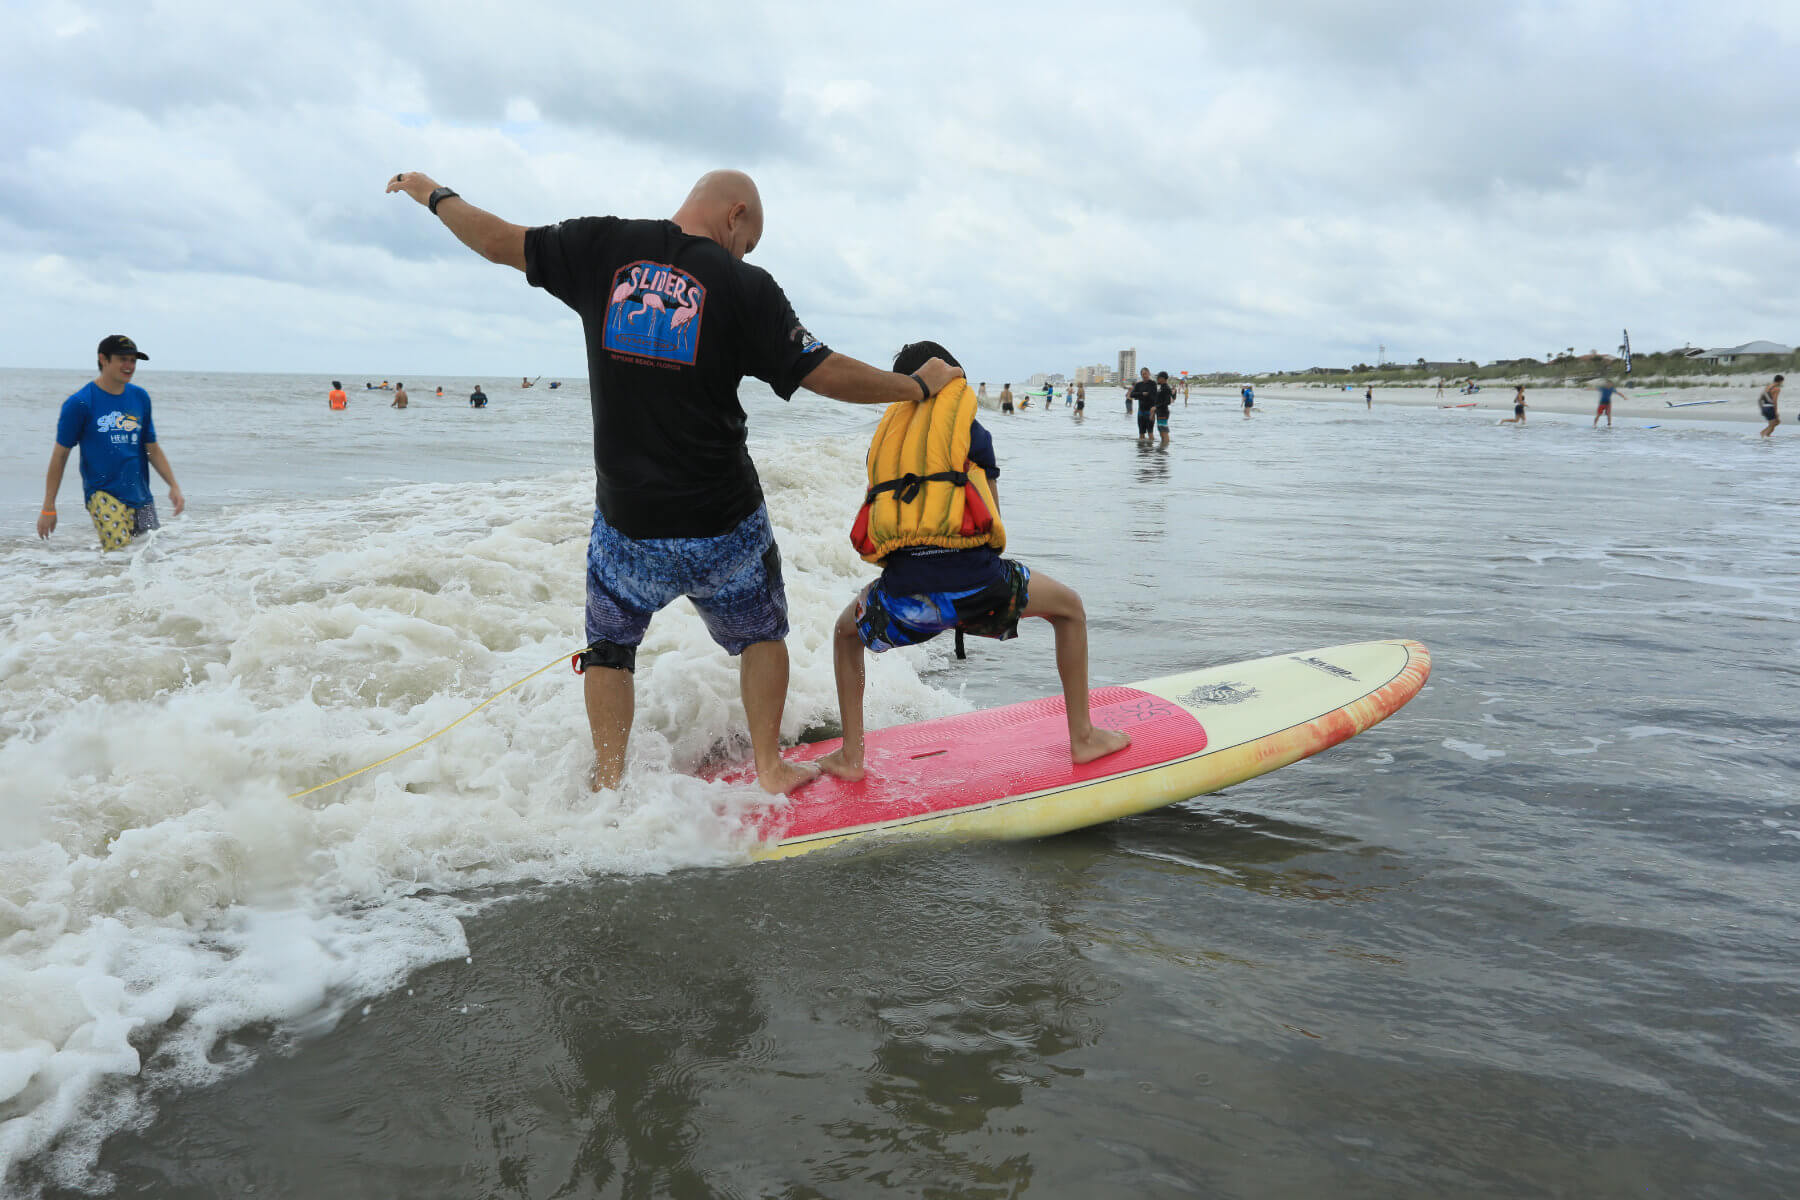 2019 Surf Camp Volunteer and Child Standing